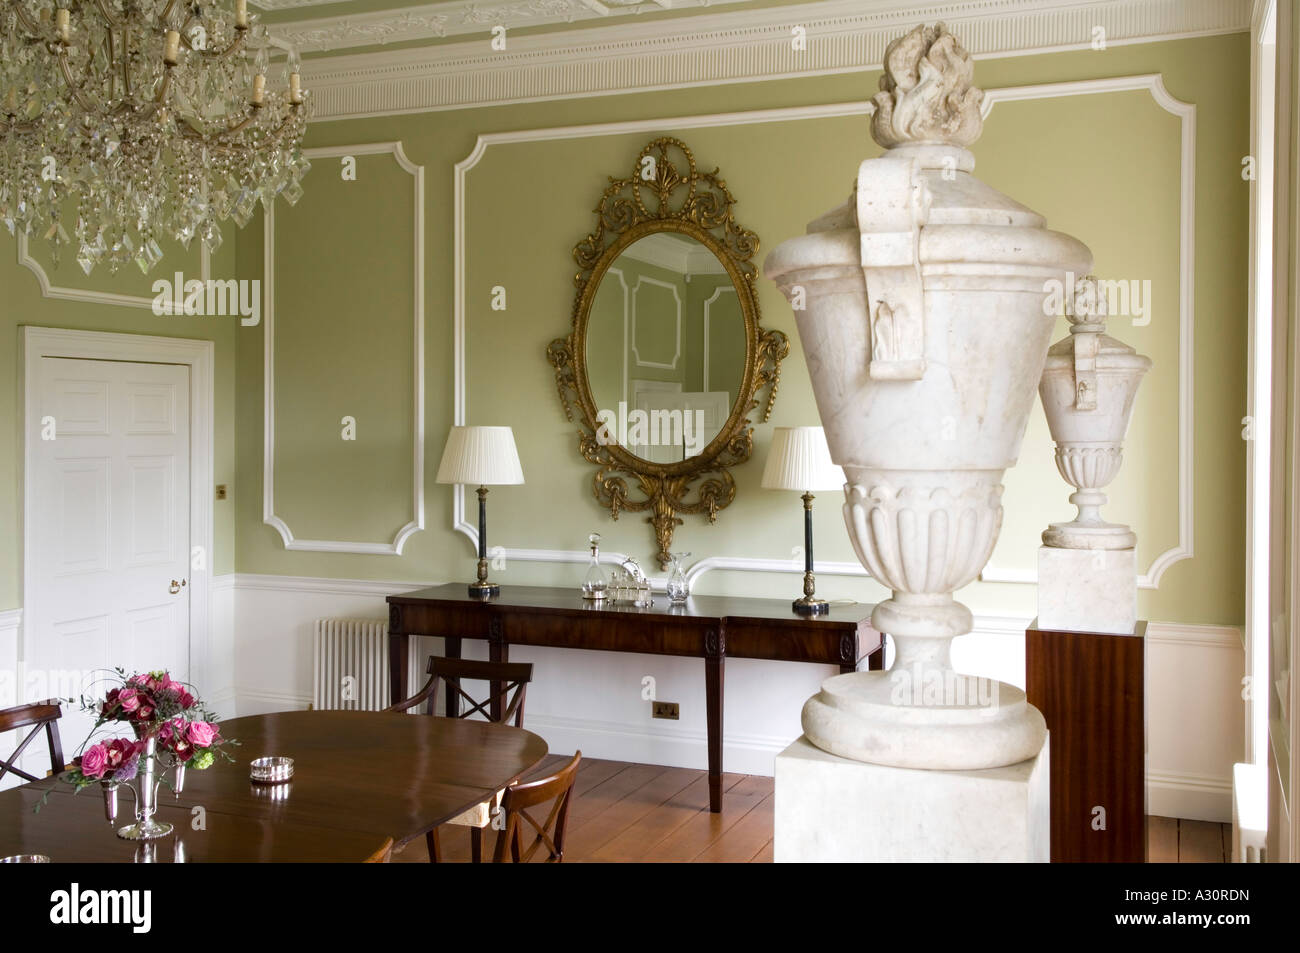 Large ornamental vases - Green Dining Room With Large Ornamental Vases On Plinths